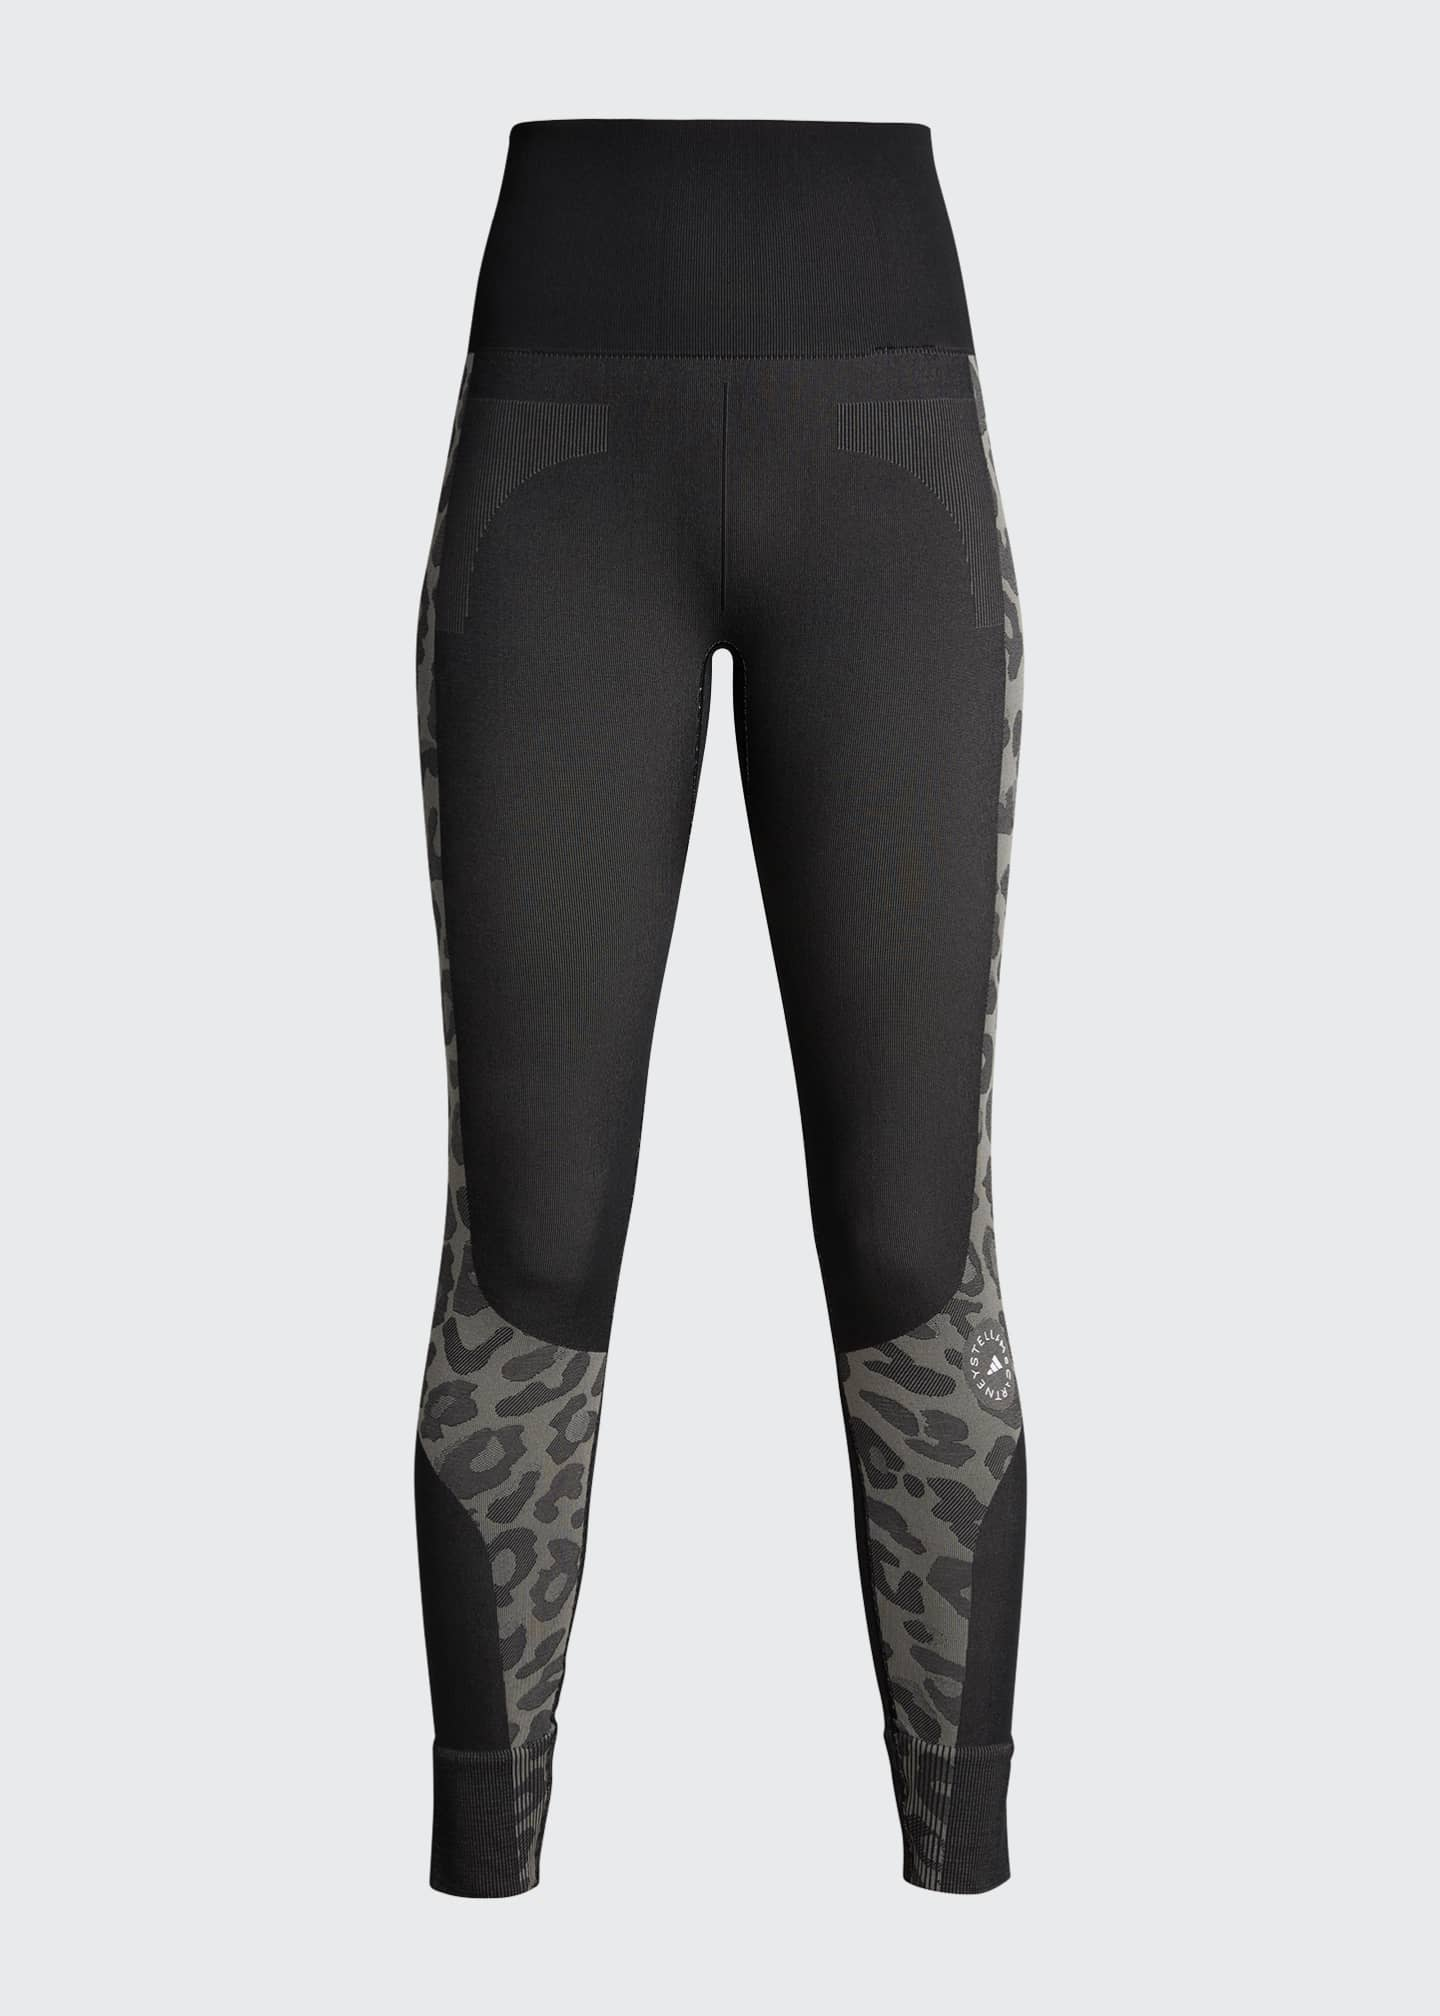 Image 5 of 5: Truepurpose Colorblock Animal Print Active Tights